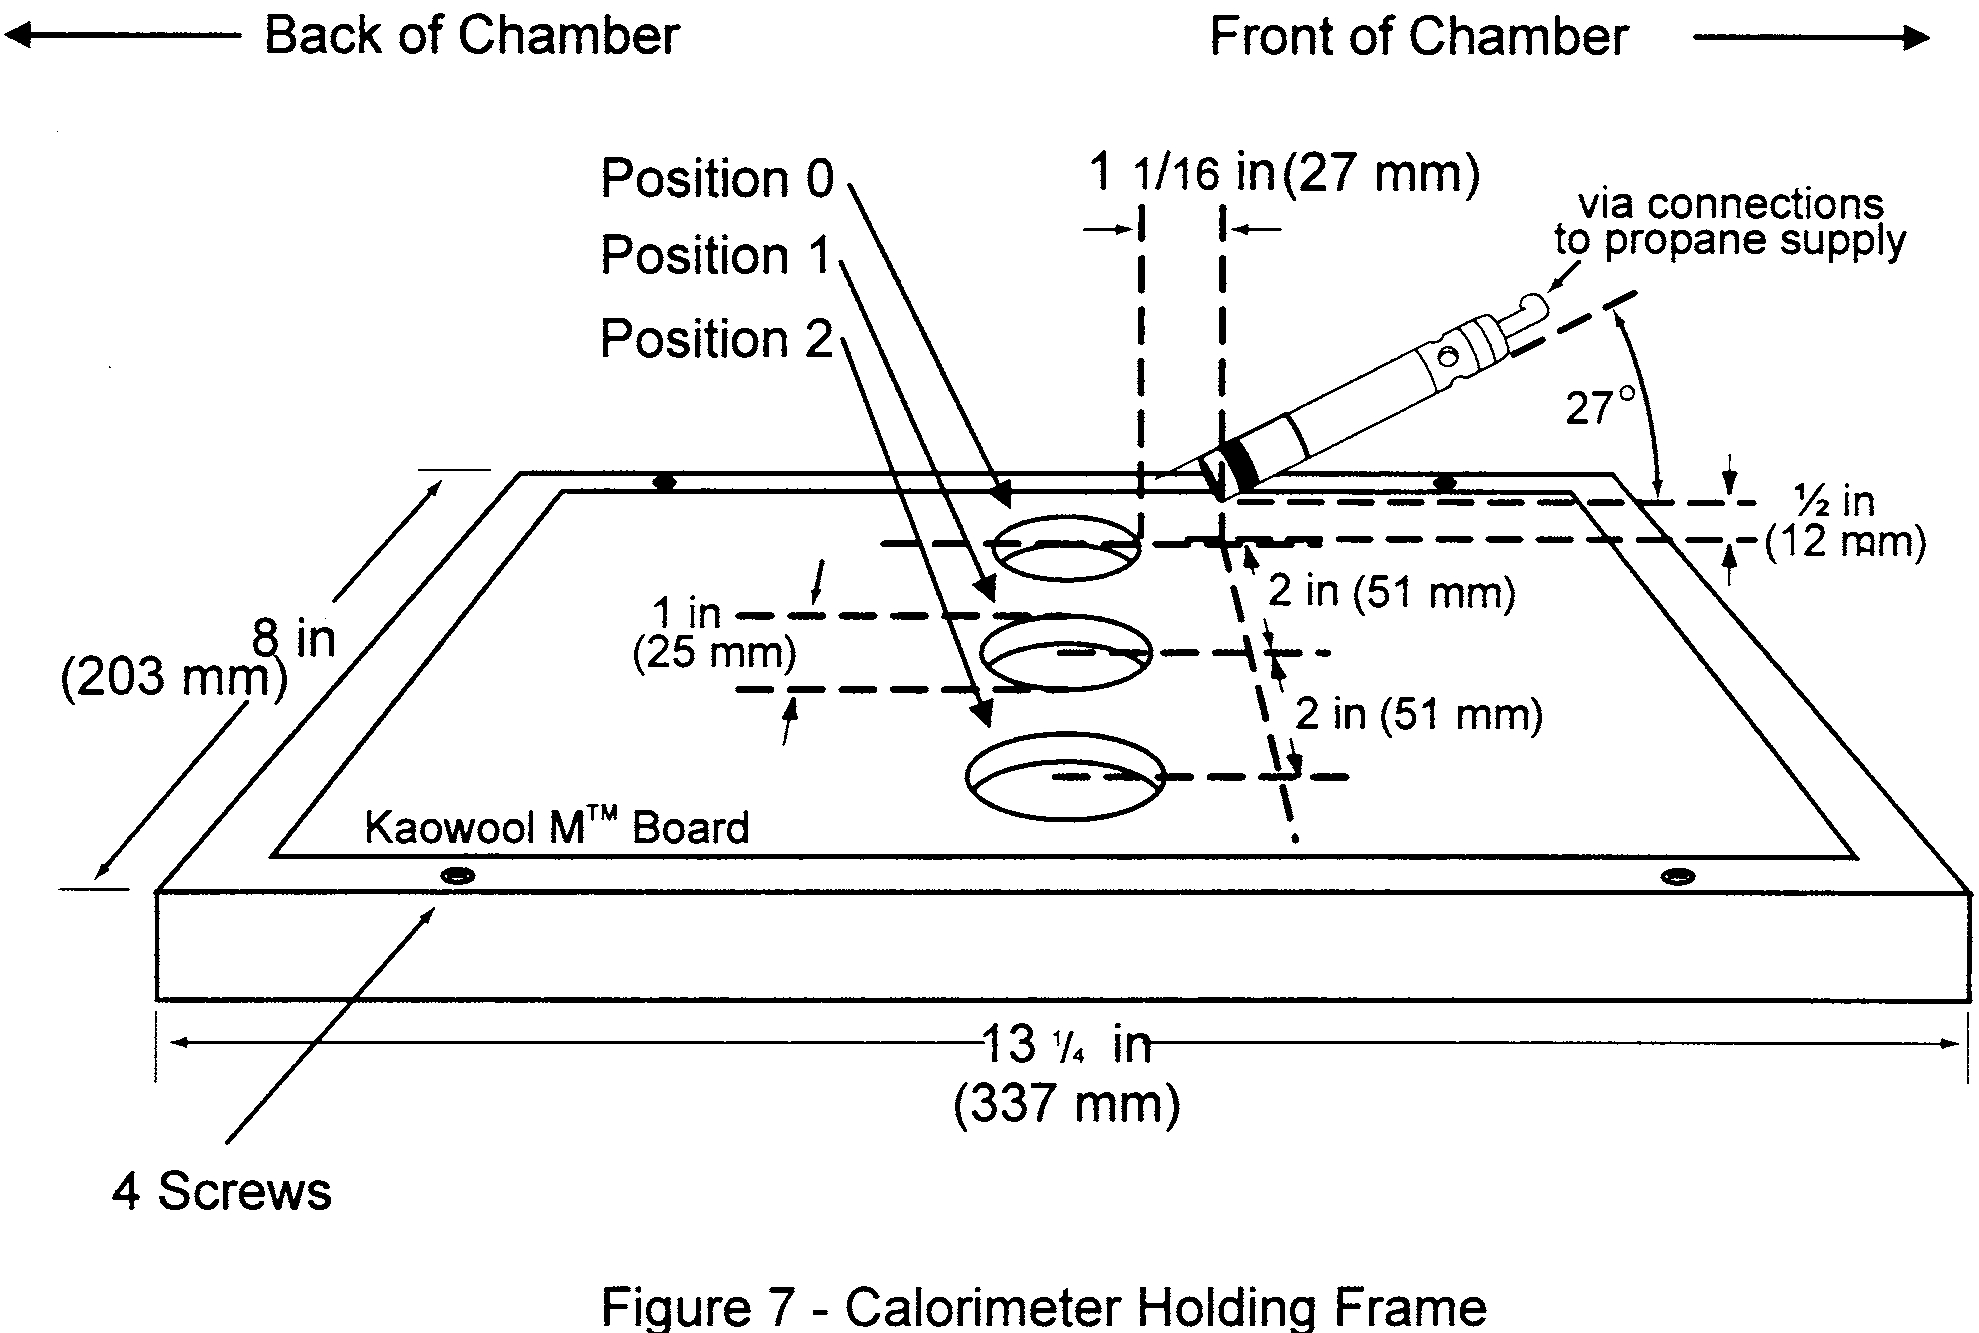 """Graphic of (8) Calorimeter fixture. With the sliding platform pulled out of the chamber, install the calorimeter holding frame and place a sheet of non-combustible material in the bottom of the sliding platform adjacent to the holding frame. This will prevent heat losses during calibration. The frame must be 131/8 inches (333 mm) deep (front to back) by 8 inches (203 mm) wide and must rest on the top of the sliding platform. It must be fabricated of 1/8 inch (3.2 mm) flat stock steel and have an opening that accommodates a 1/2 inch (12.7 mm) thick piece of refractory board, which is level with the top of the sliding platform. The board must have three 1-inch (25.4 mm) diameter holes drilled through the board for calorimeter insertion. The distance to the radiant panel surface from the centerline of the first hole (""""zero"""" position) must be 71/2 ±1/8 inches (191 ±3 mm). The distance between the centerline of the first hole to the centerline of the second hole must be 2 inches (51 mm). It must also be the same distance from the centerline of the second hole to the centerline of the third hole. See figure 7. A calorimeter holding frame that differs in construction is acceptable as long as the height from the centerline of the first hole to the radiant panel and the distance between holes is the same as described in this paragraph."""